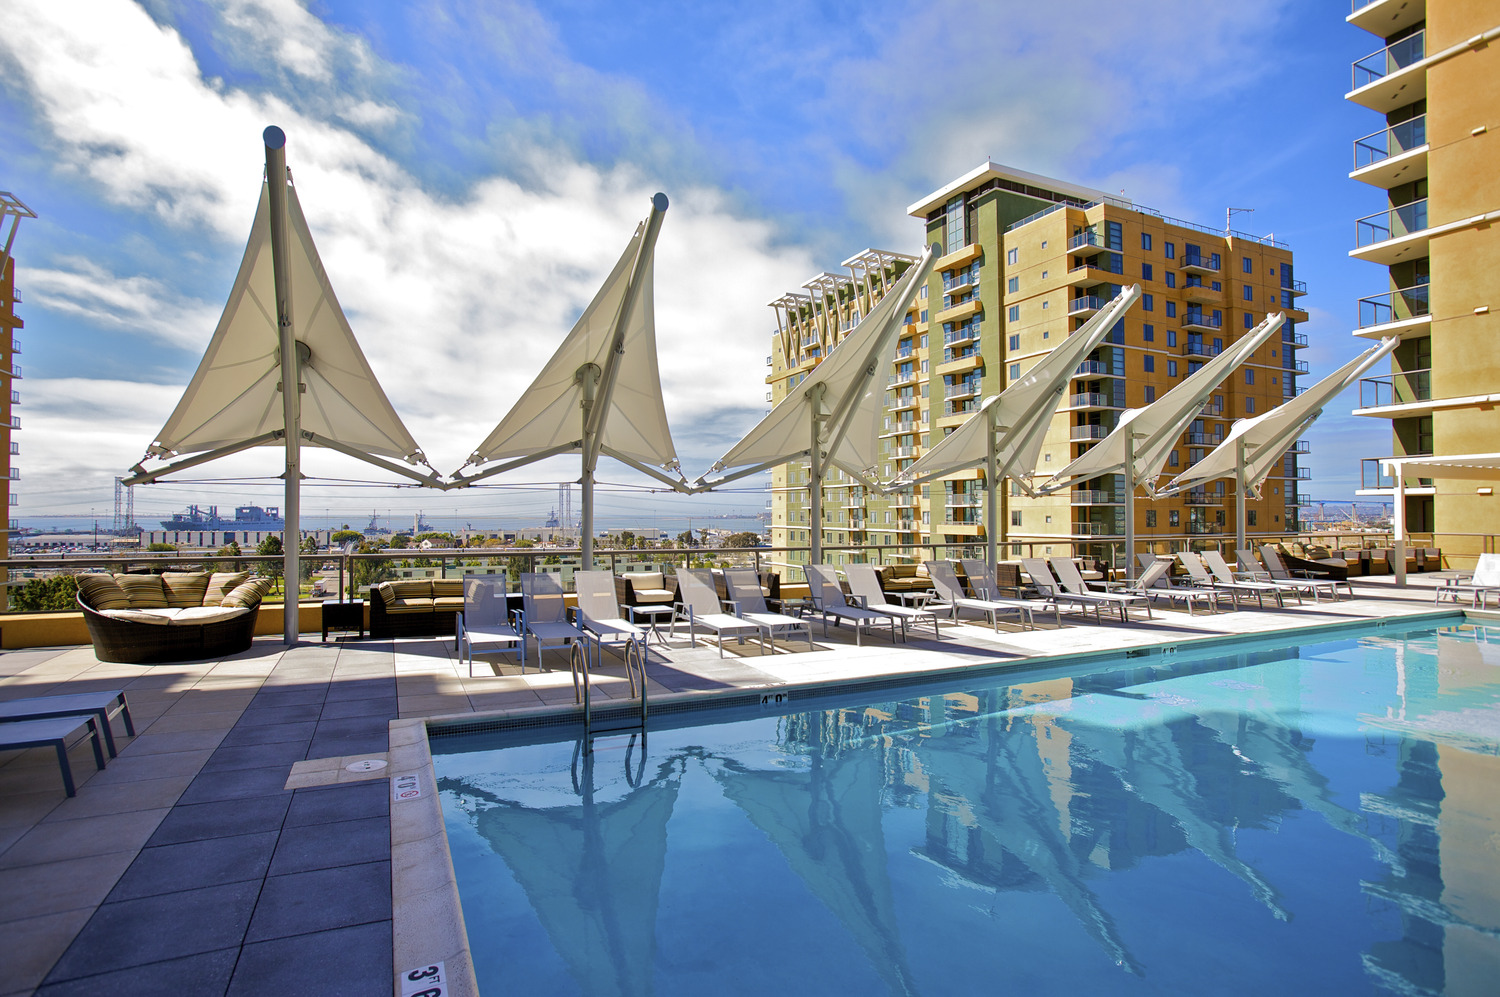 CBG builds Pacific Beacon, a 2,398 Beds in 1,199-Unit Luxury Apartment Community for Single Sailors and Students in San Diego, CA - Image #2